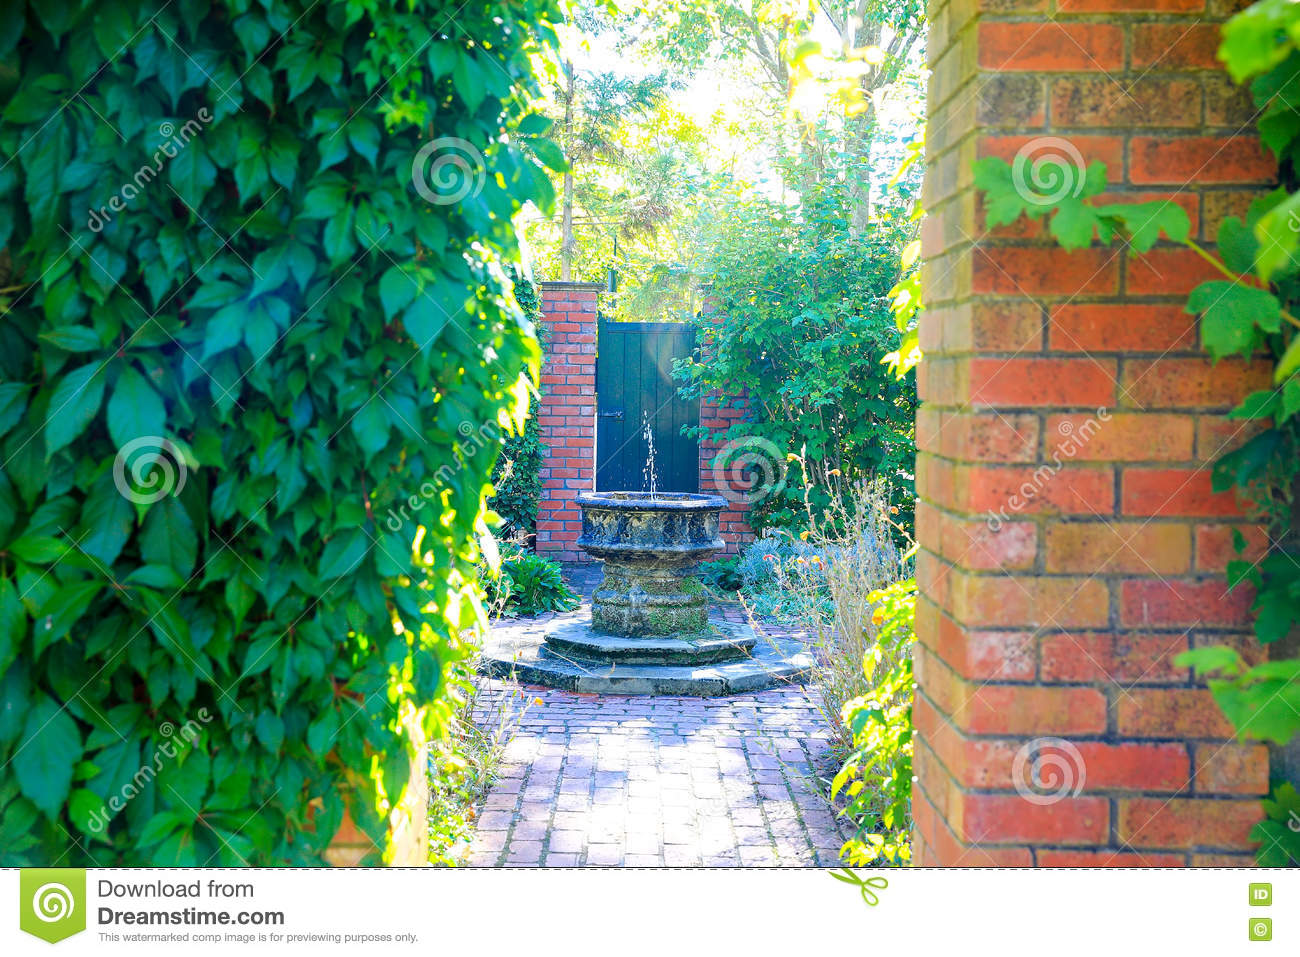 HAMILTON, NZ - FEBRUARY 25, 2015: Fountain, English Flower Garden, Hamilton Gardens